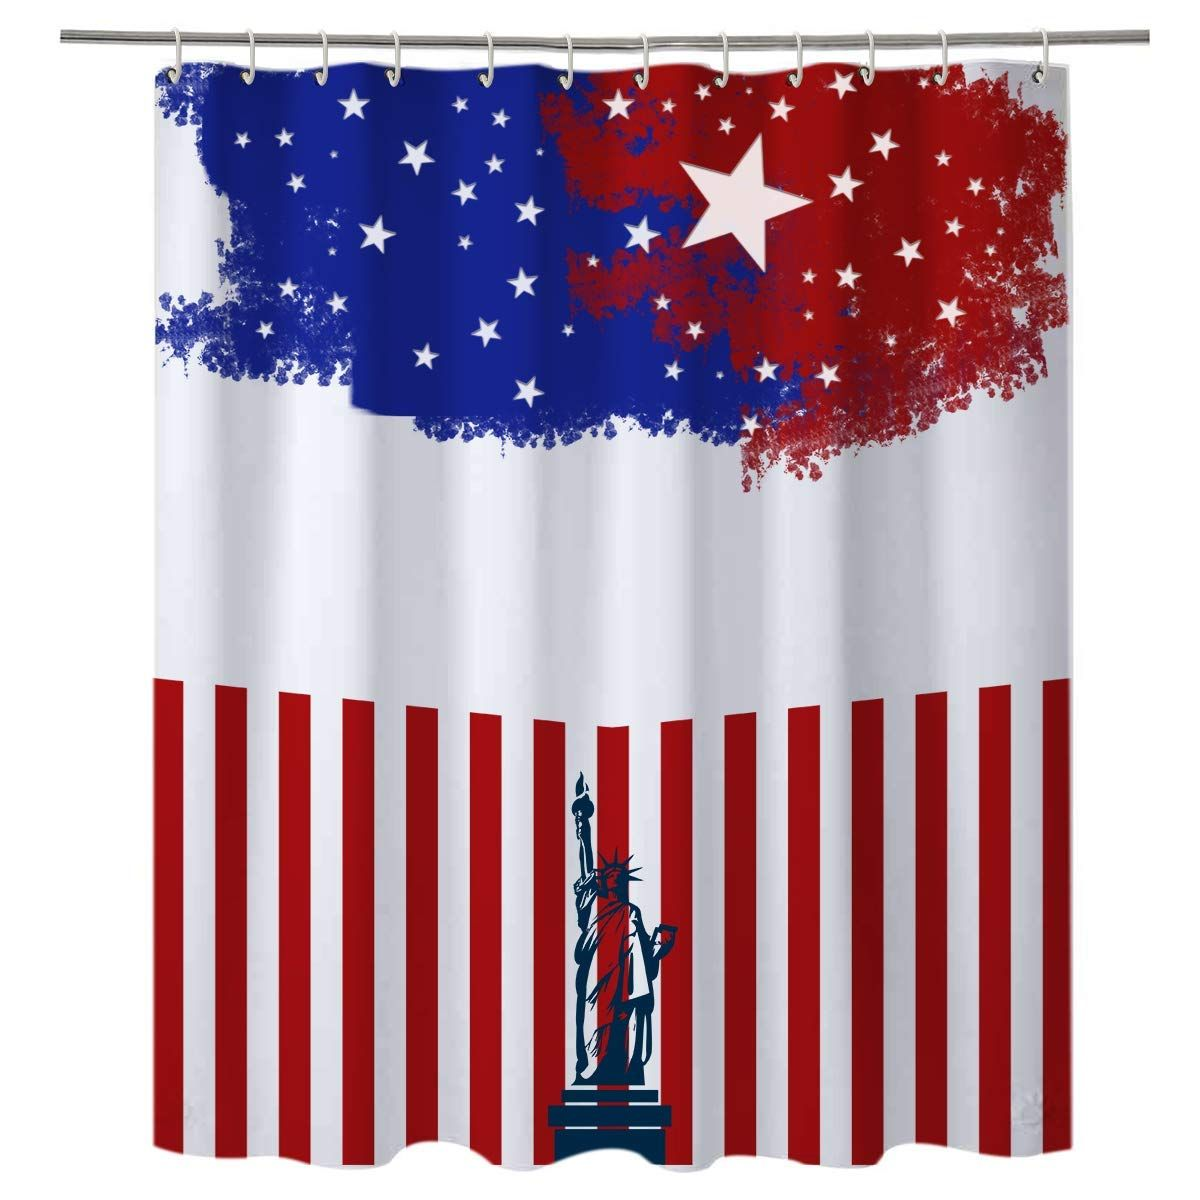 American Flag Shower Curtains Are Popular It Will Make Your